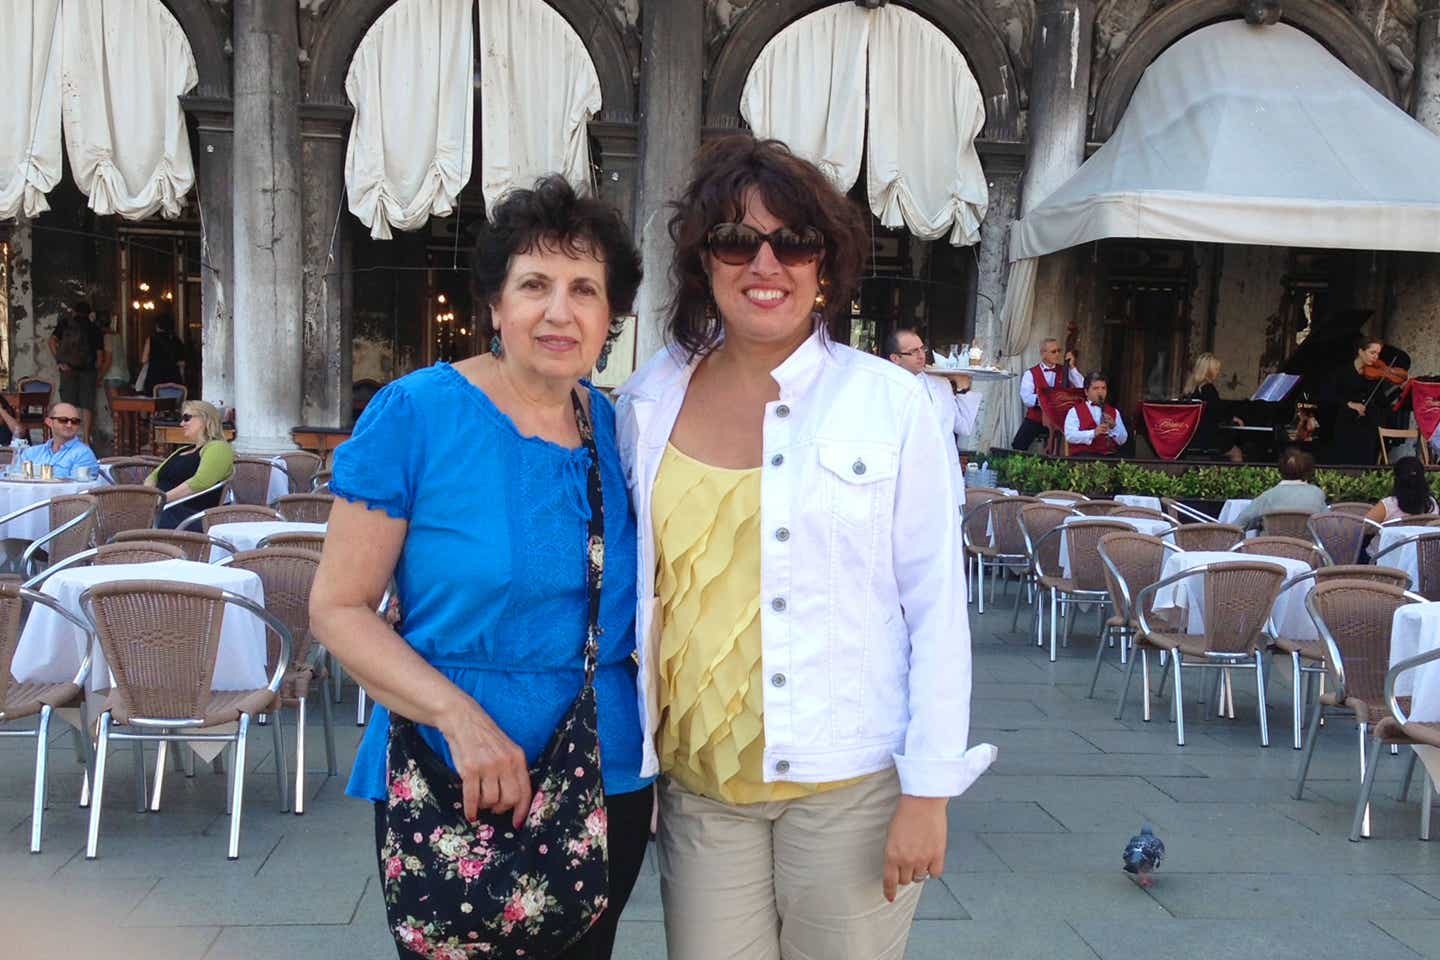 Author, Jennifer Probst (right), wears a white denim jacket and yellow blouse stands next to her mother (left) wearing a blue blouse in front of a restaurant in Venice, Italy.